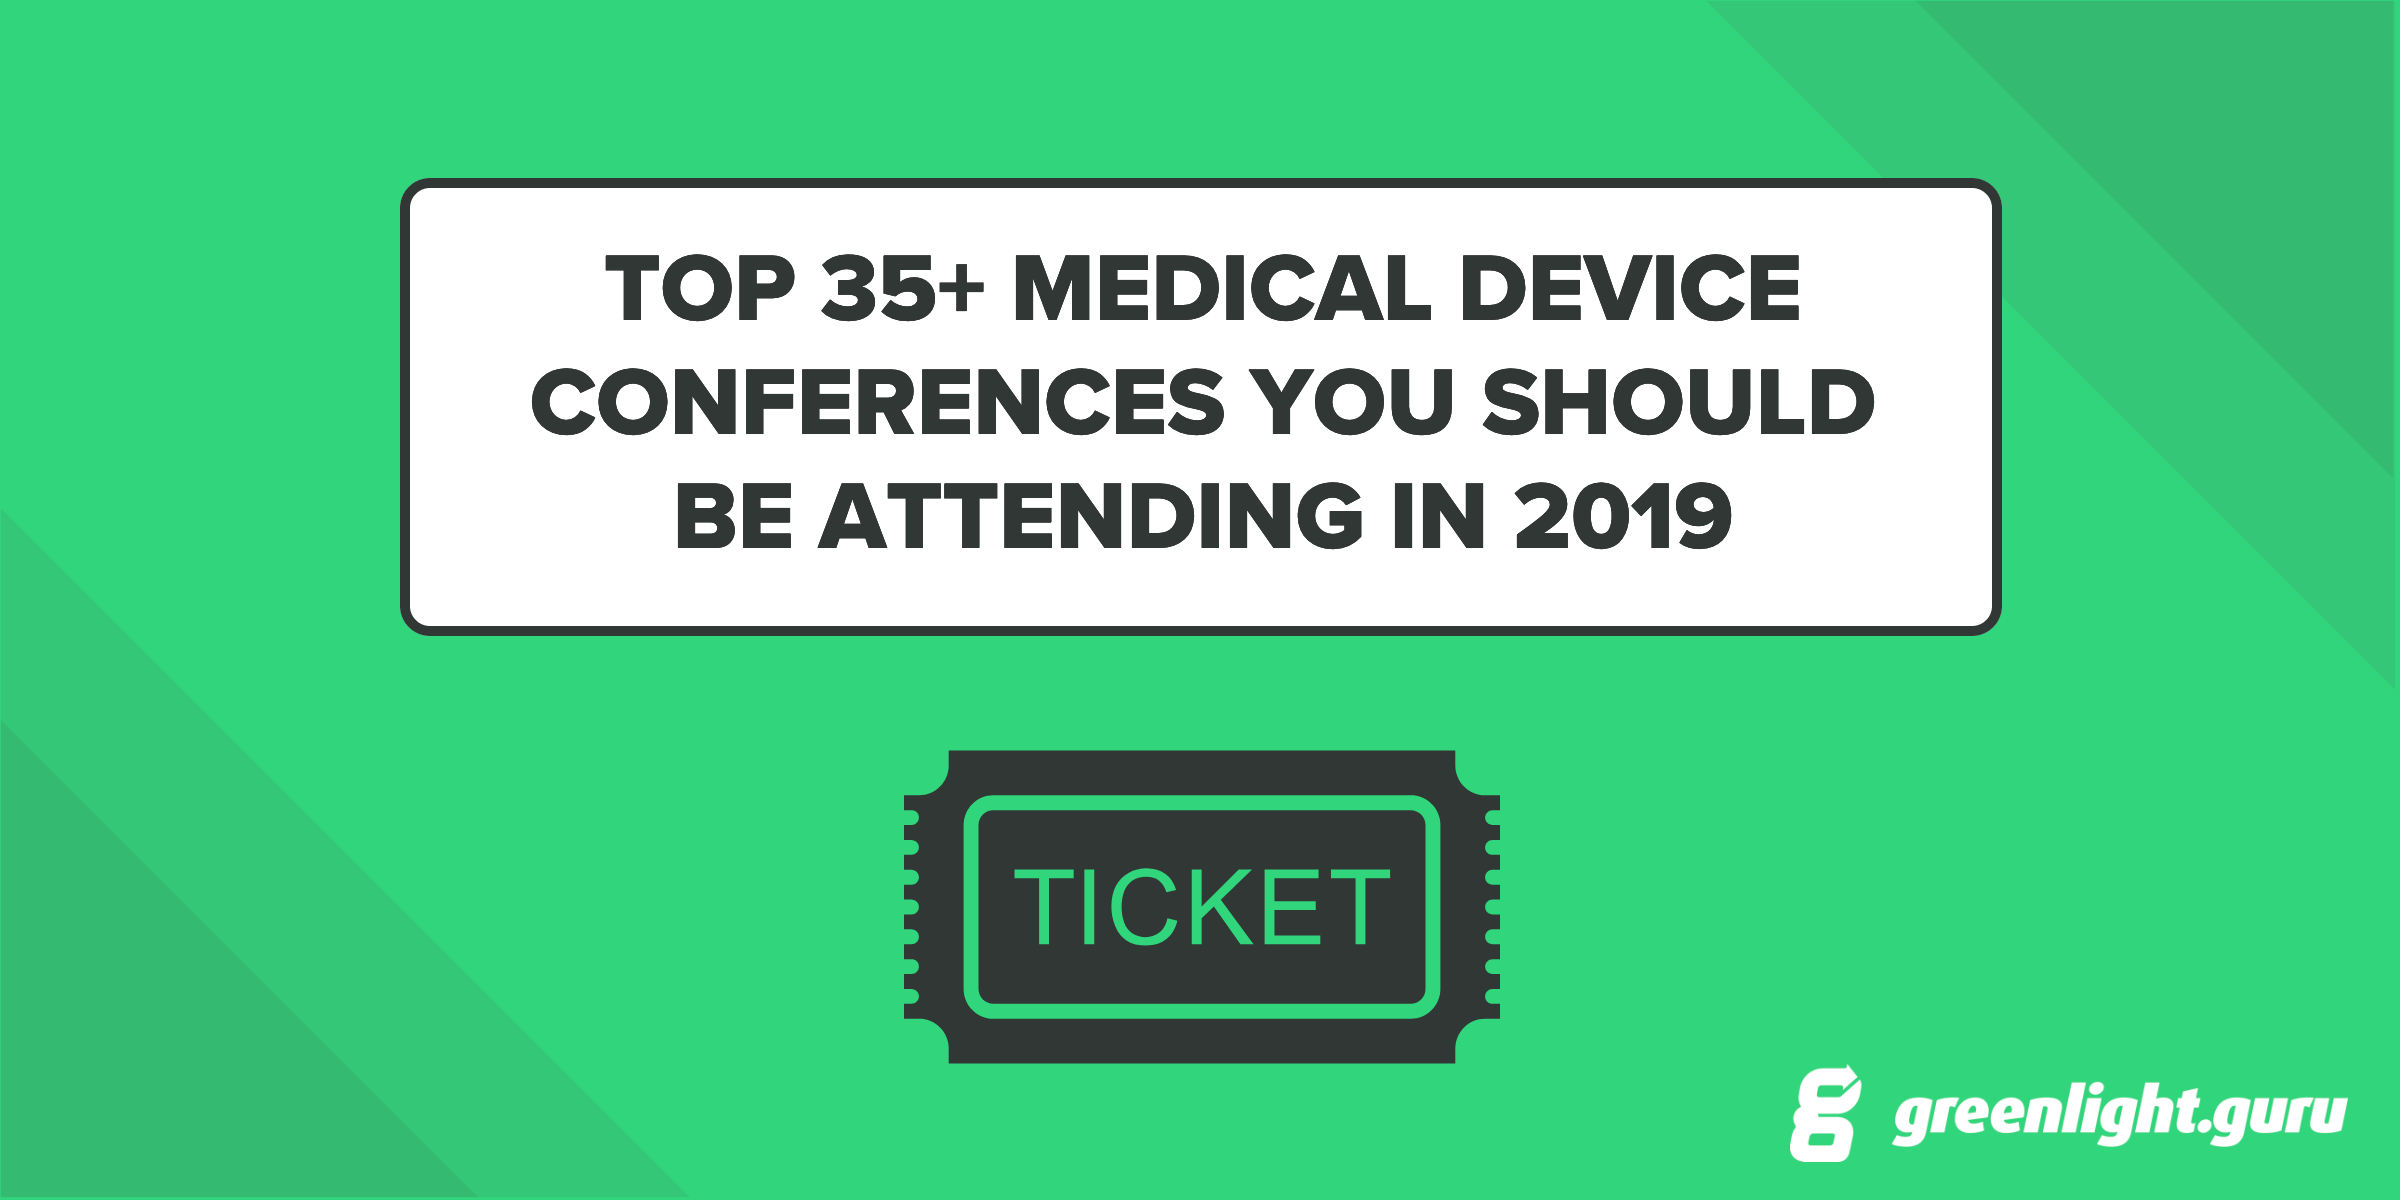 Top 35+ Medical Device Conferences To Attend in 2019